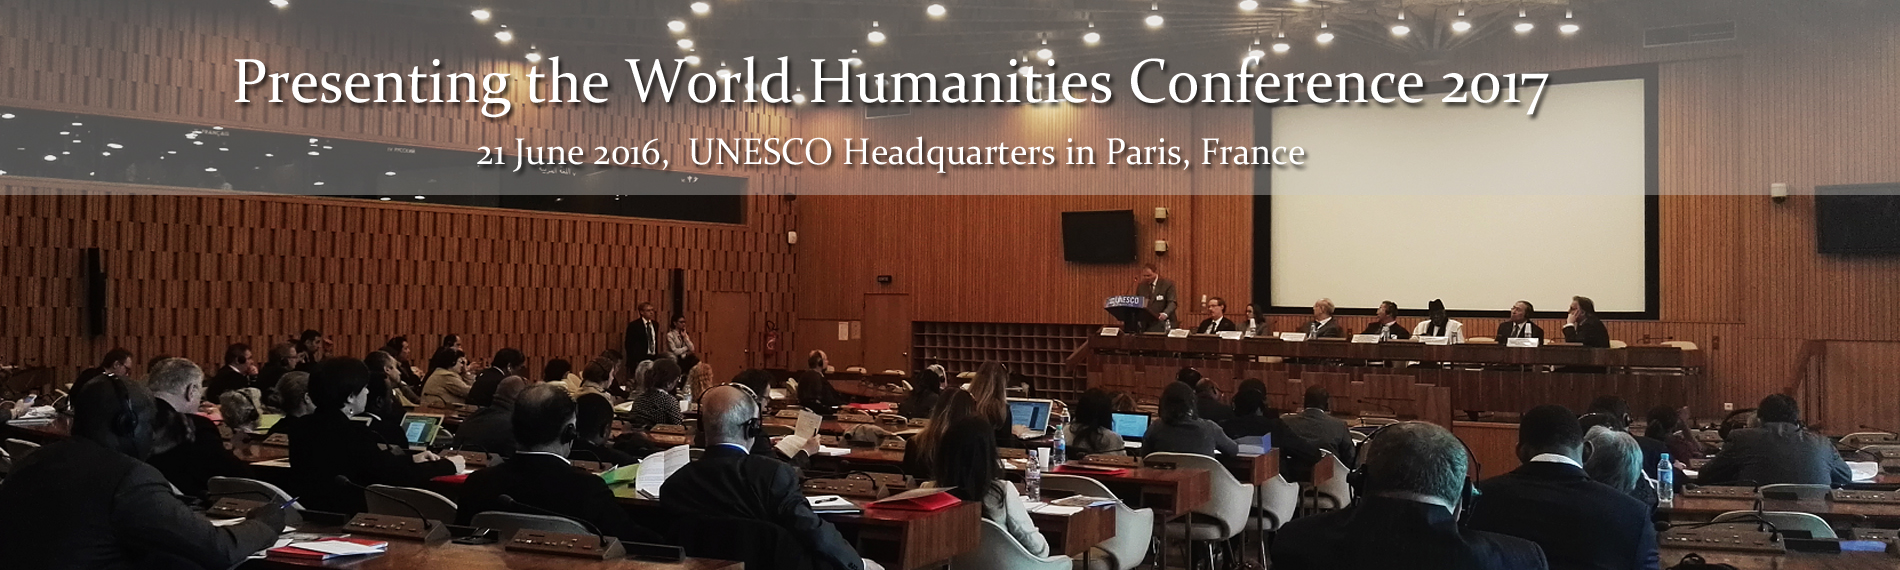 Presenting the World Humanities Conference 2017 http://www.cipsh.net/web/news-146.htm